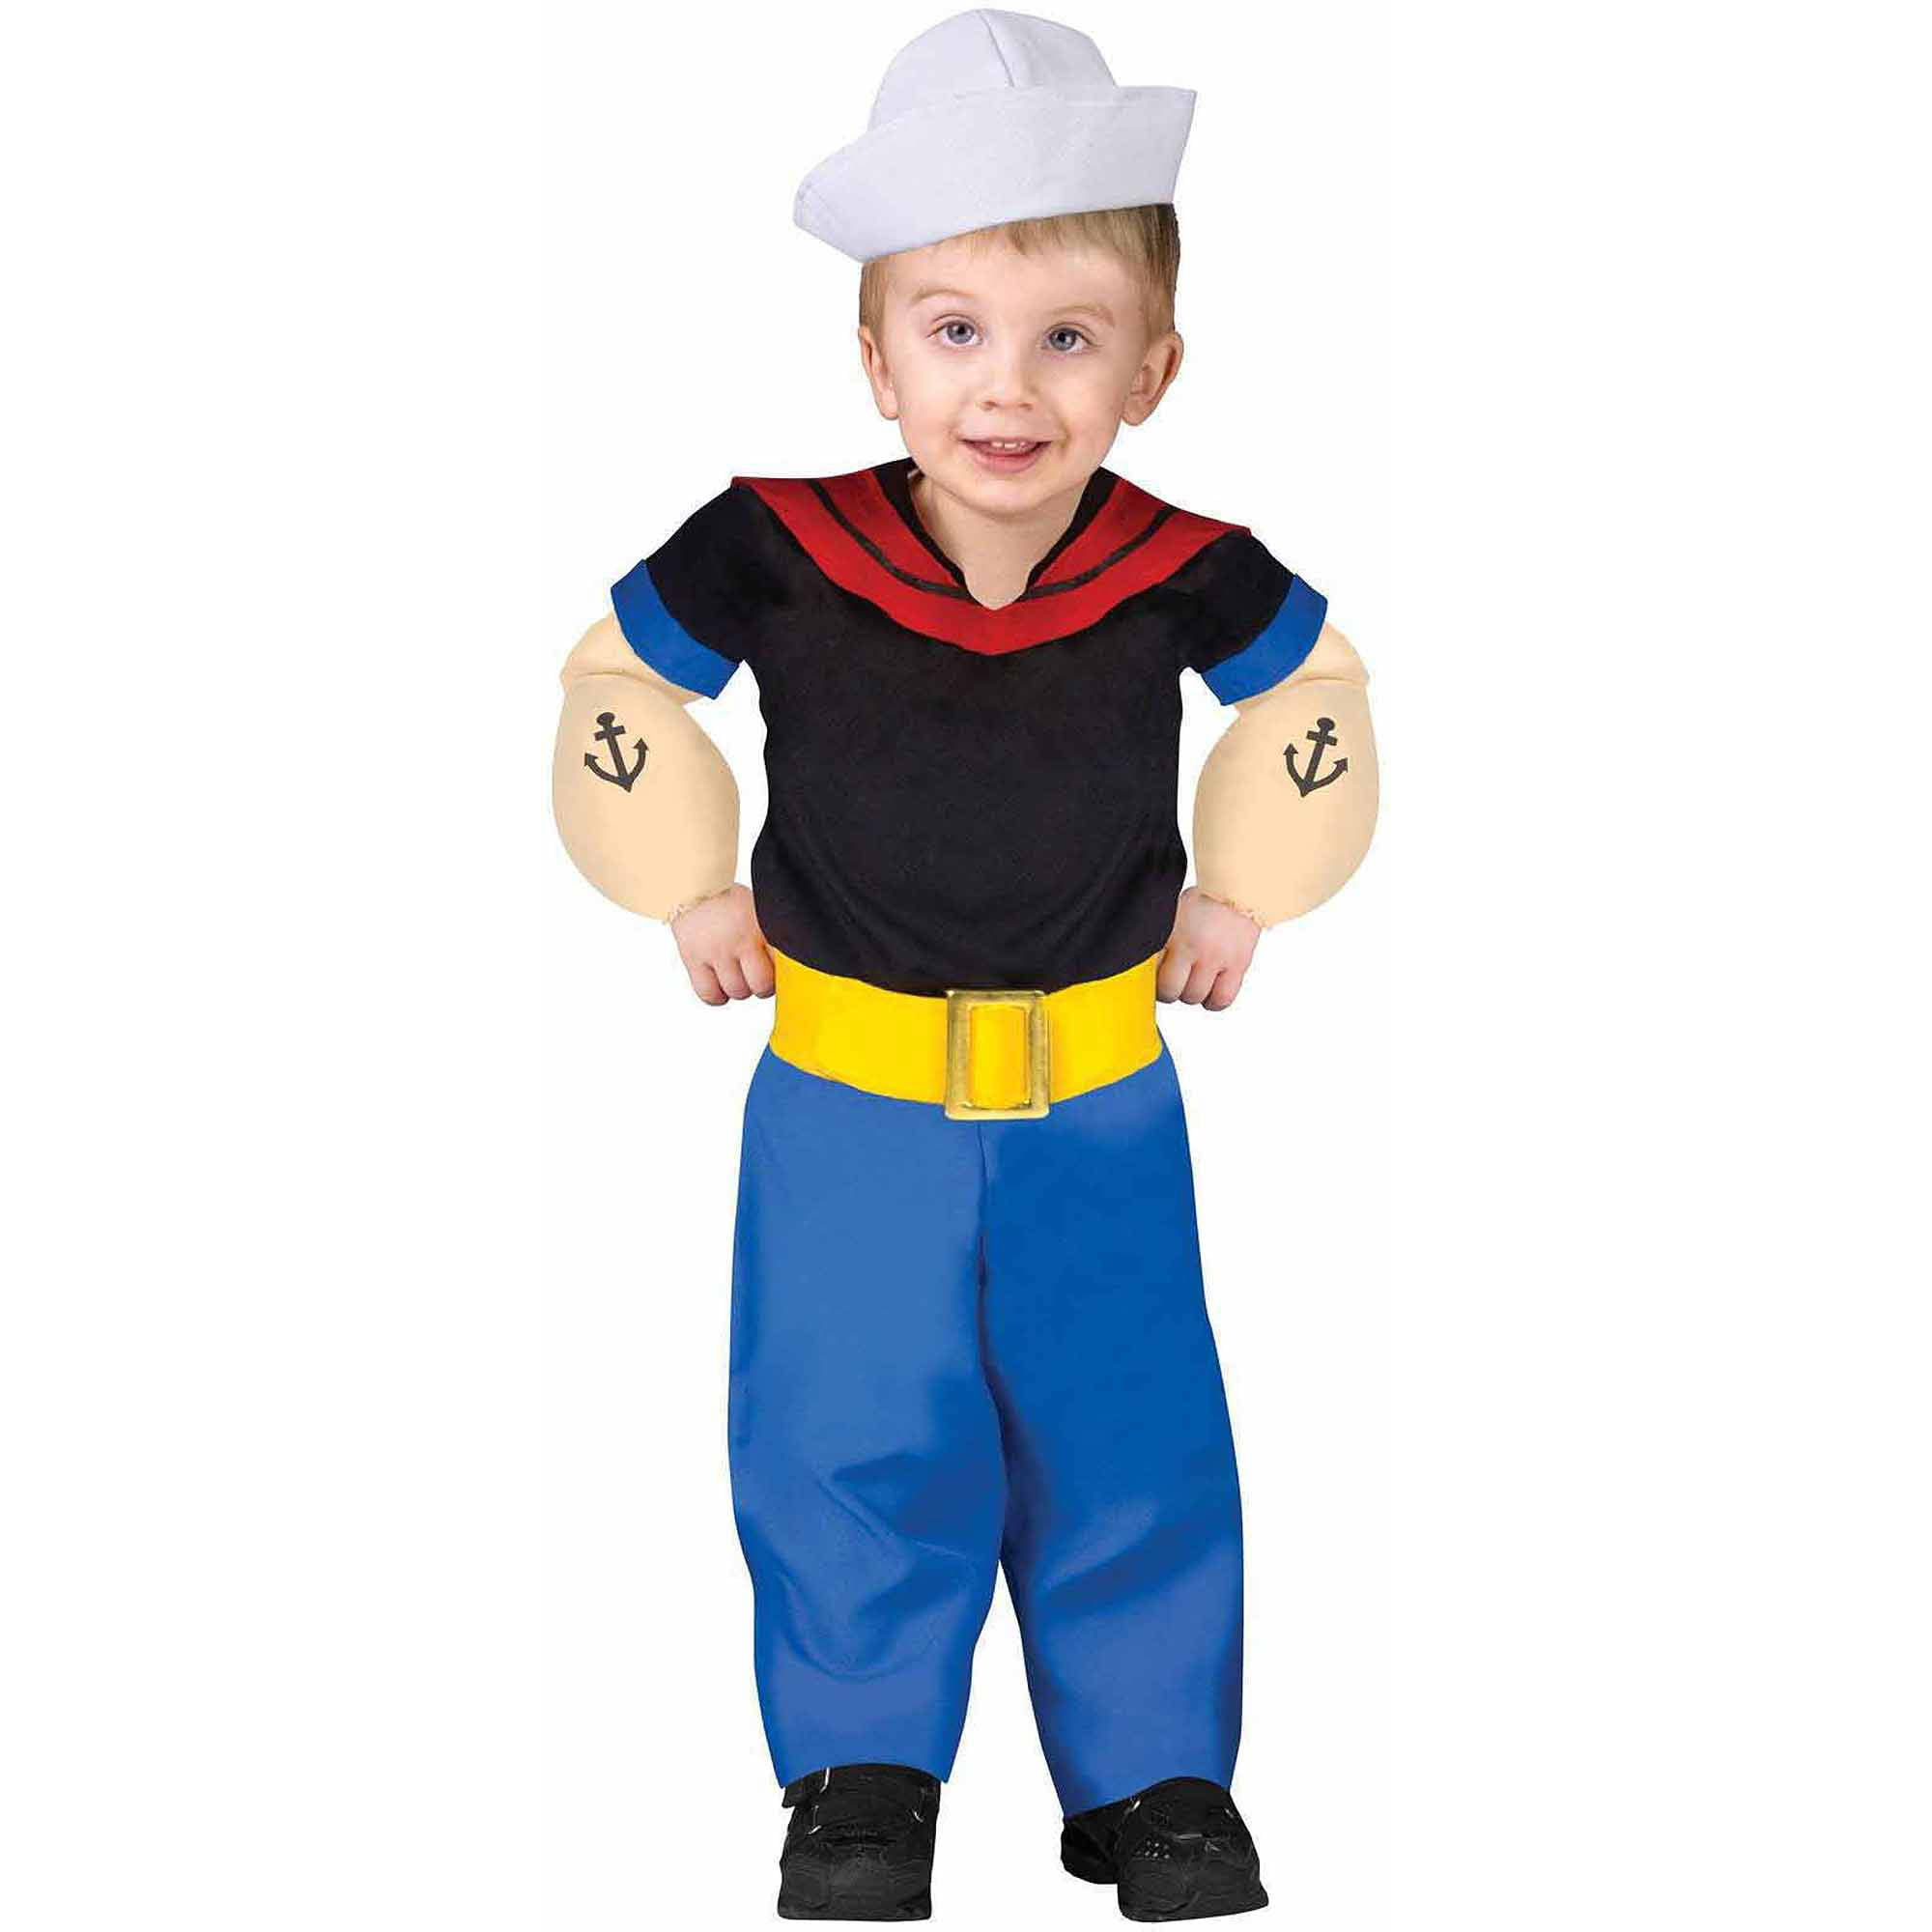 Popeye The Sailor Man Cartoon Toddler/Infant Baby Boys Costume ...